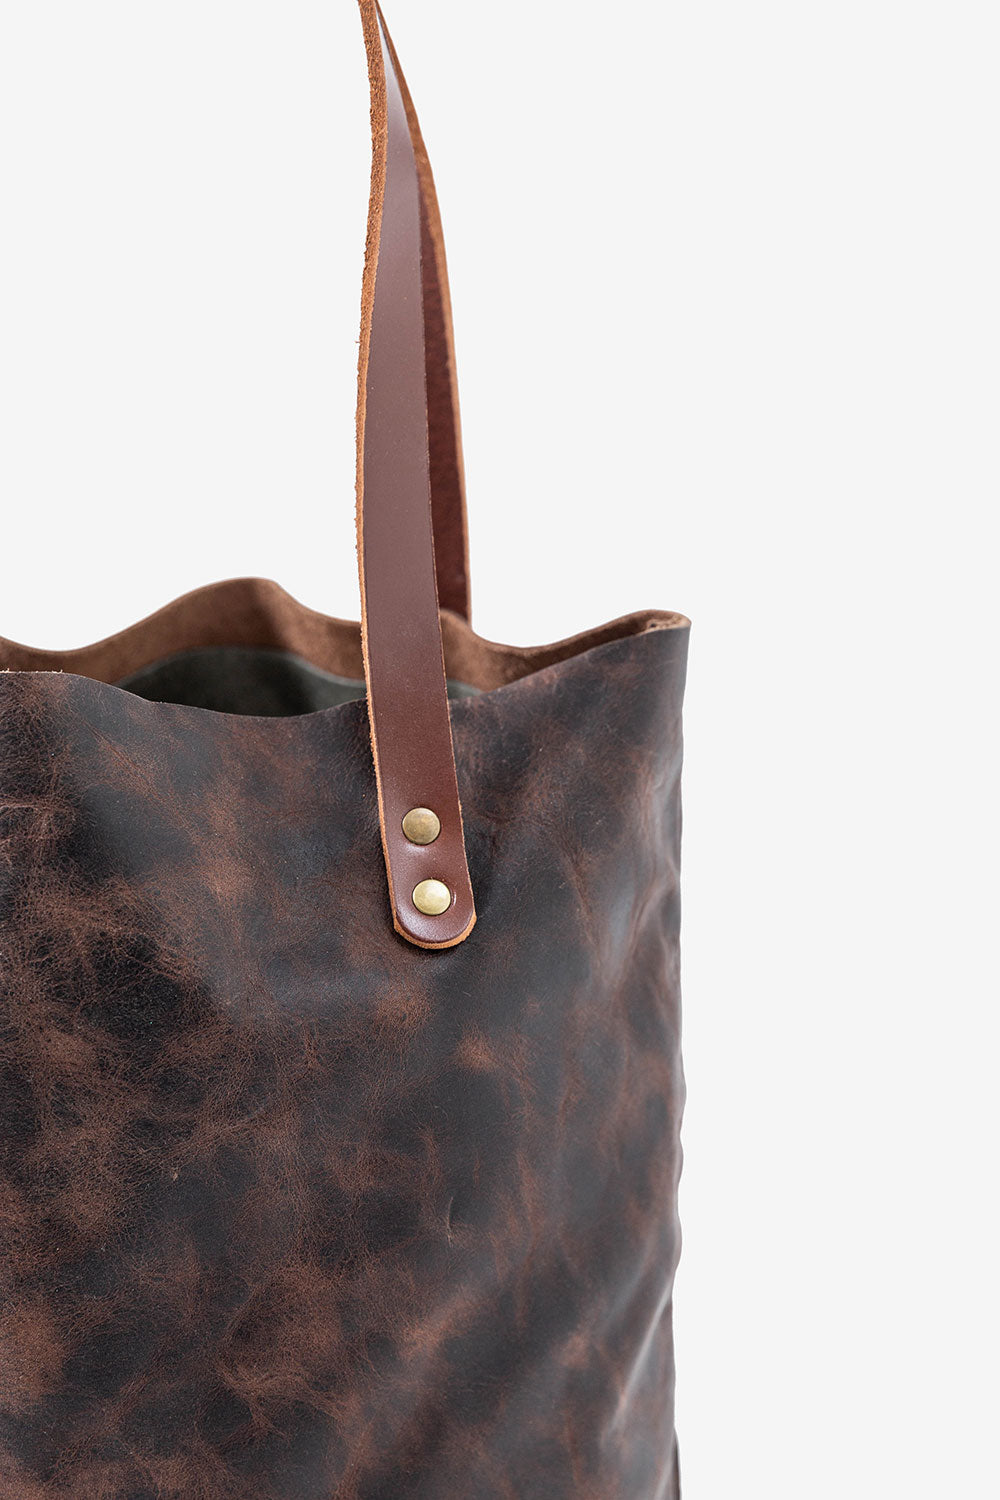 Alabama Chanin Hawks and Doves USA Made Leather Bag with Straps